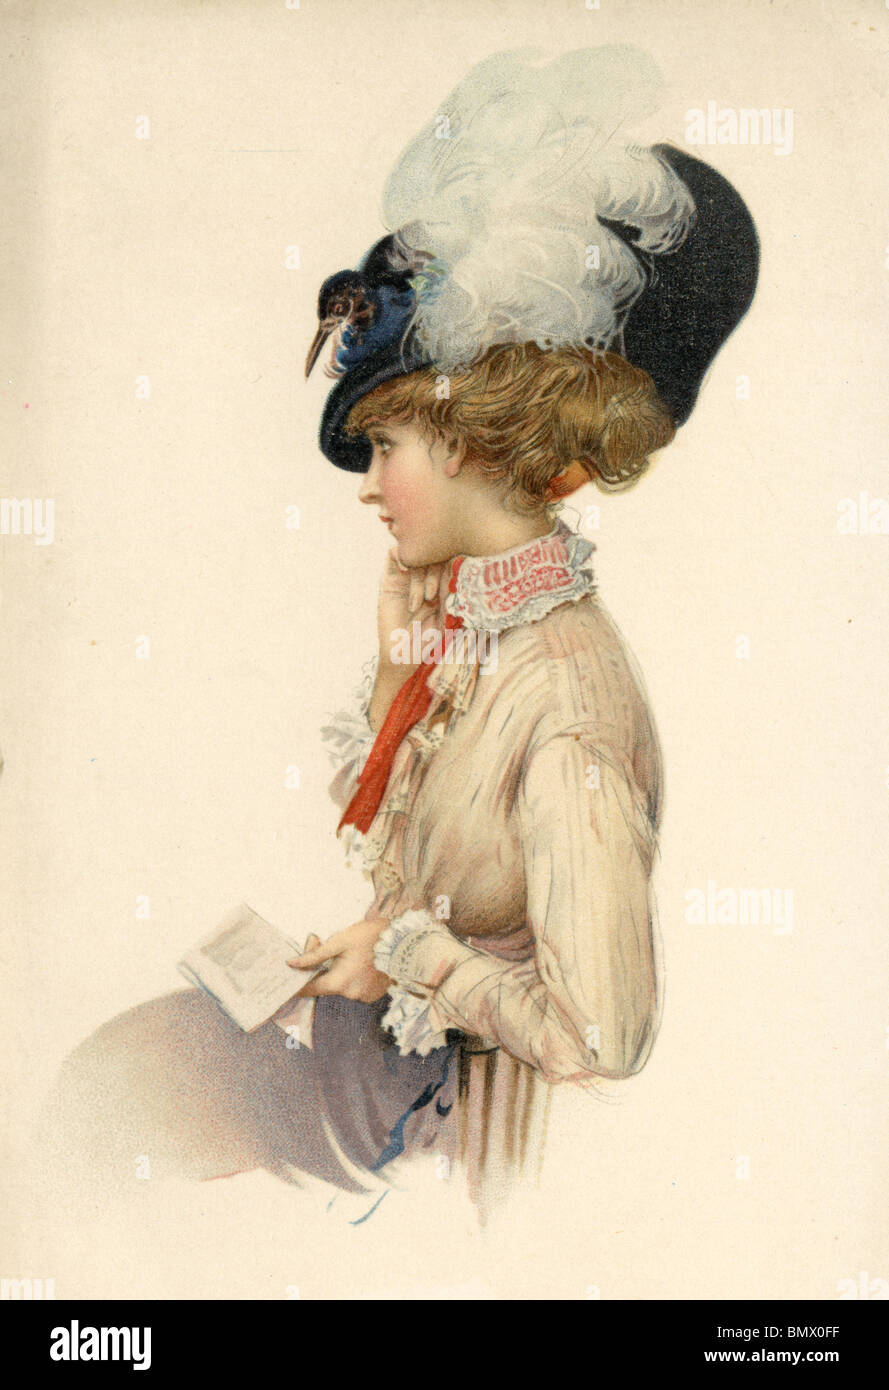 Woman with a Feather Bonnet - Stock Image